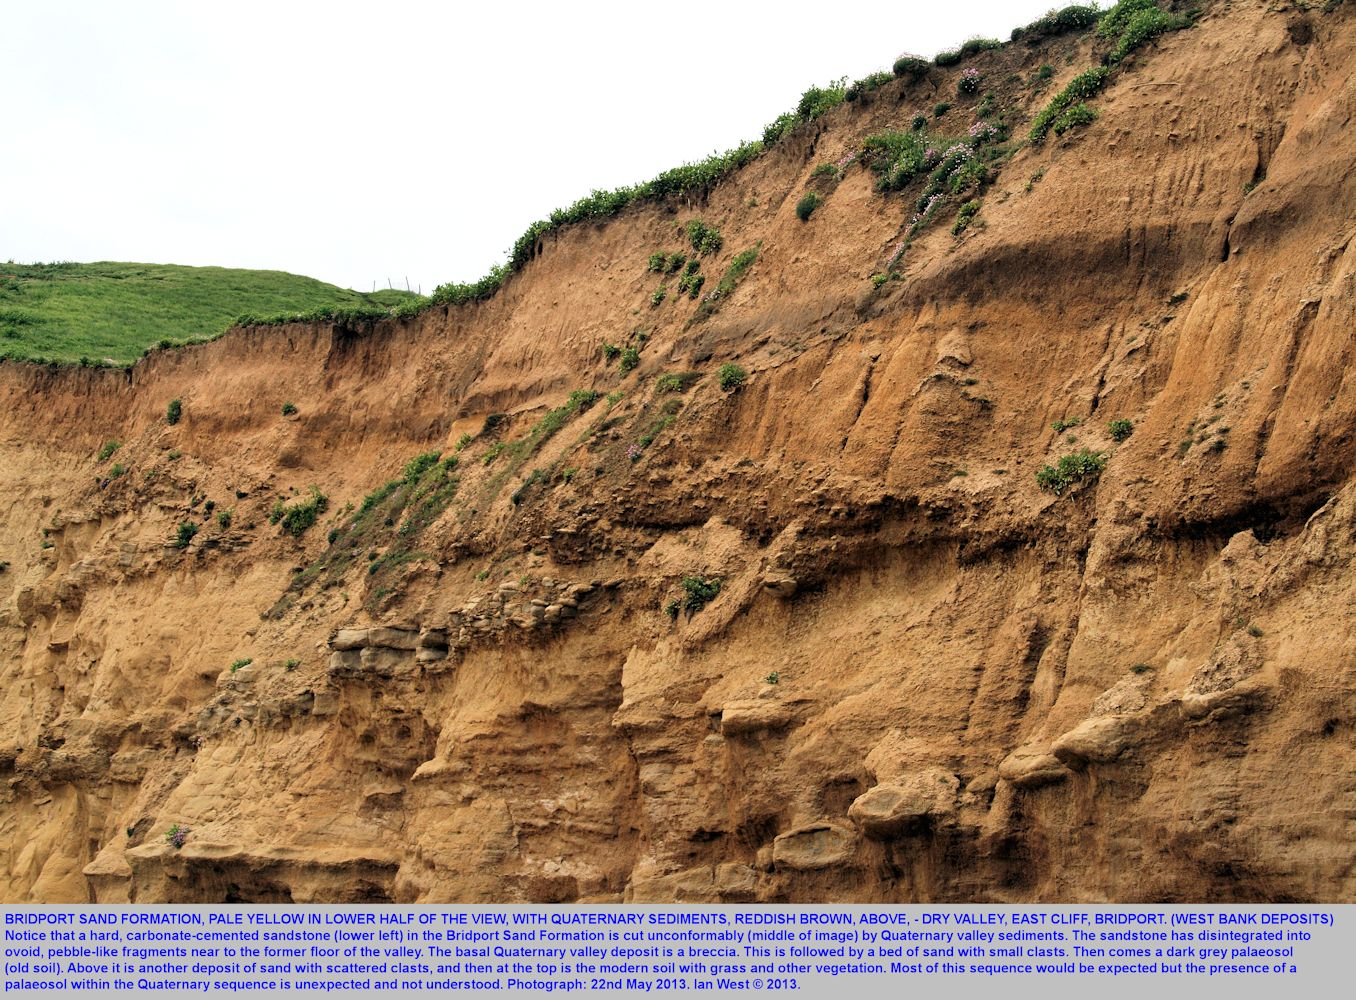 Quaternary deposits in a small dry valley, more detail, East Cliff, West Bay, Bridport, Dorset, 22nd May 2013